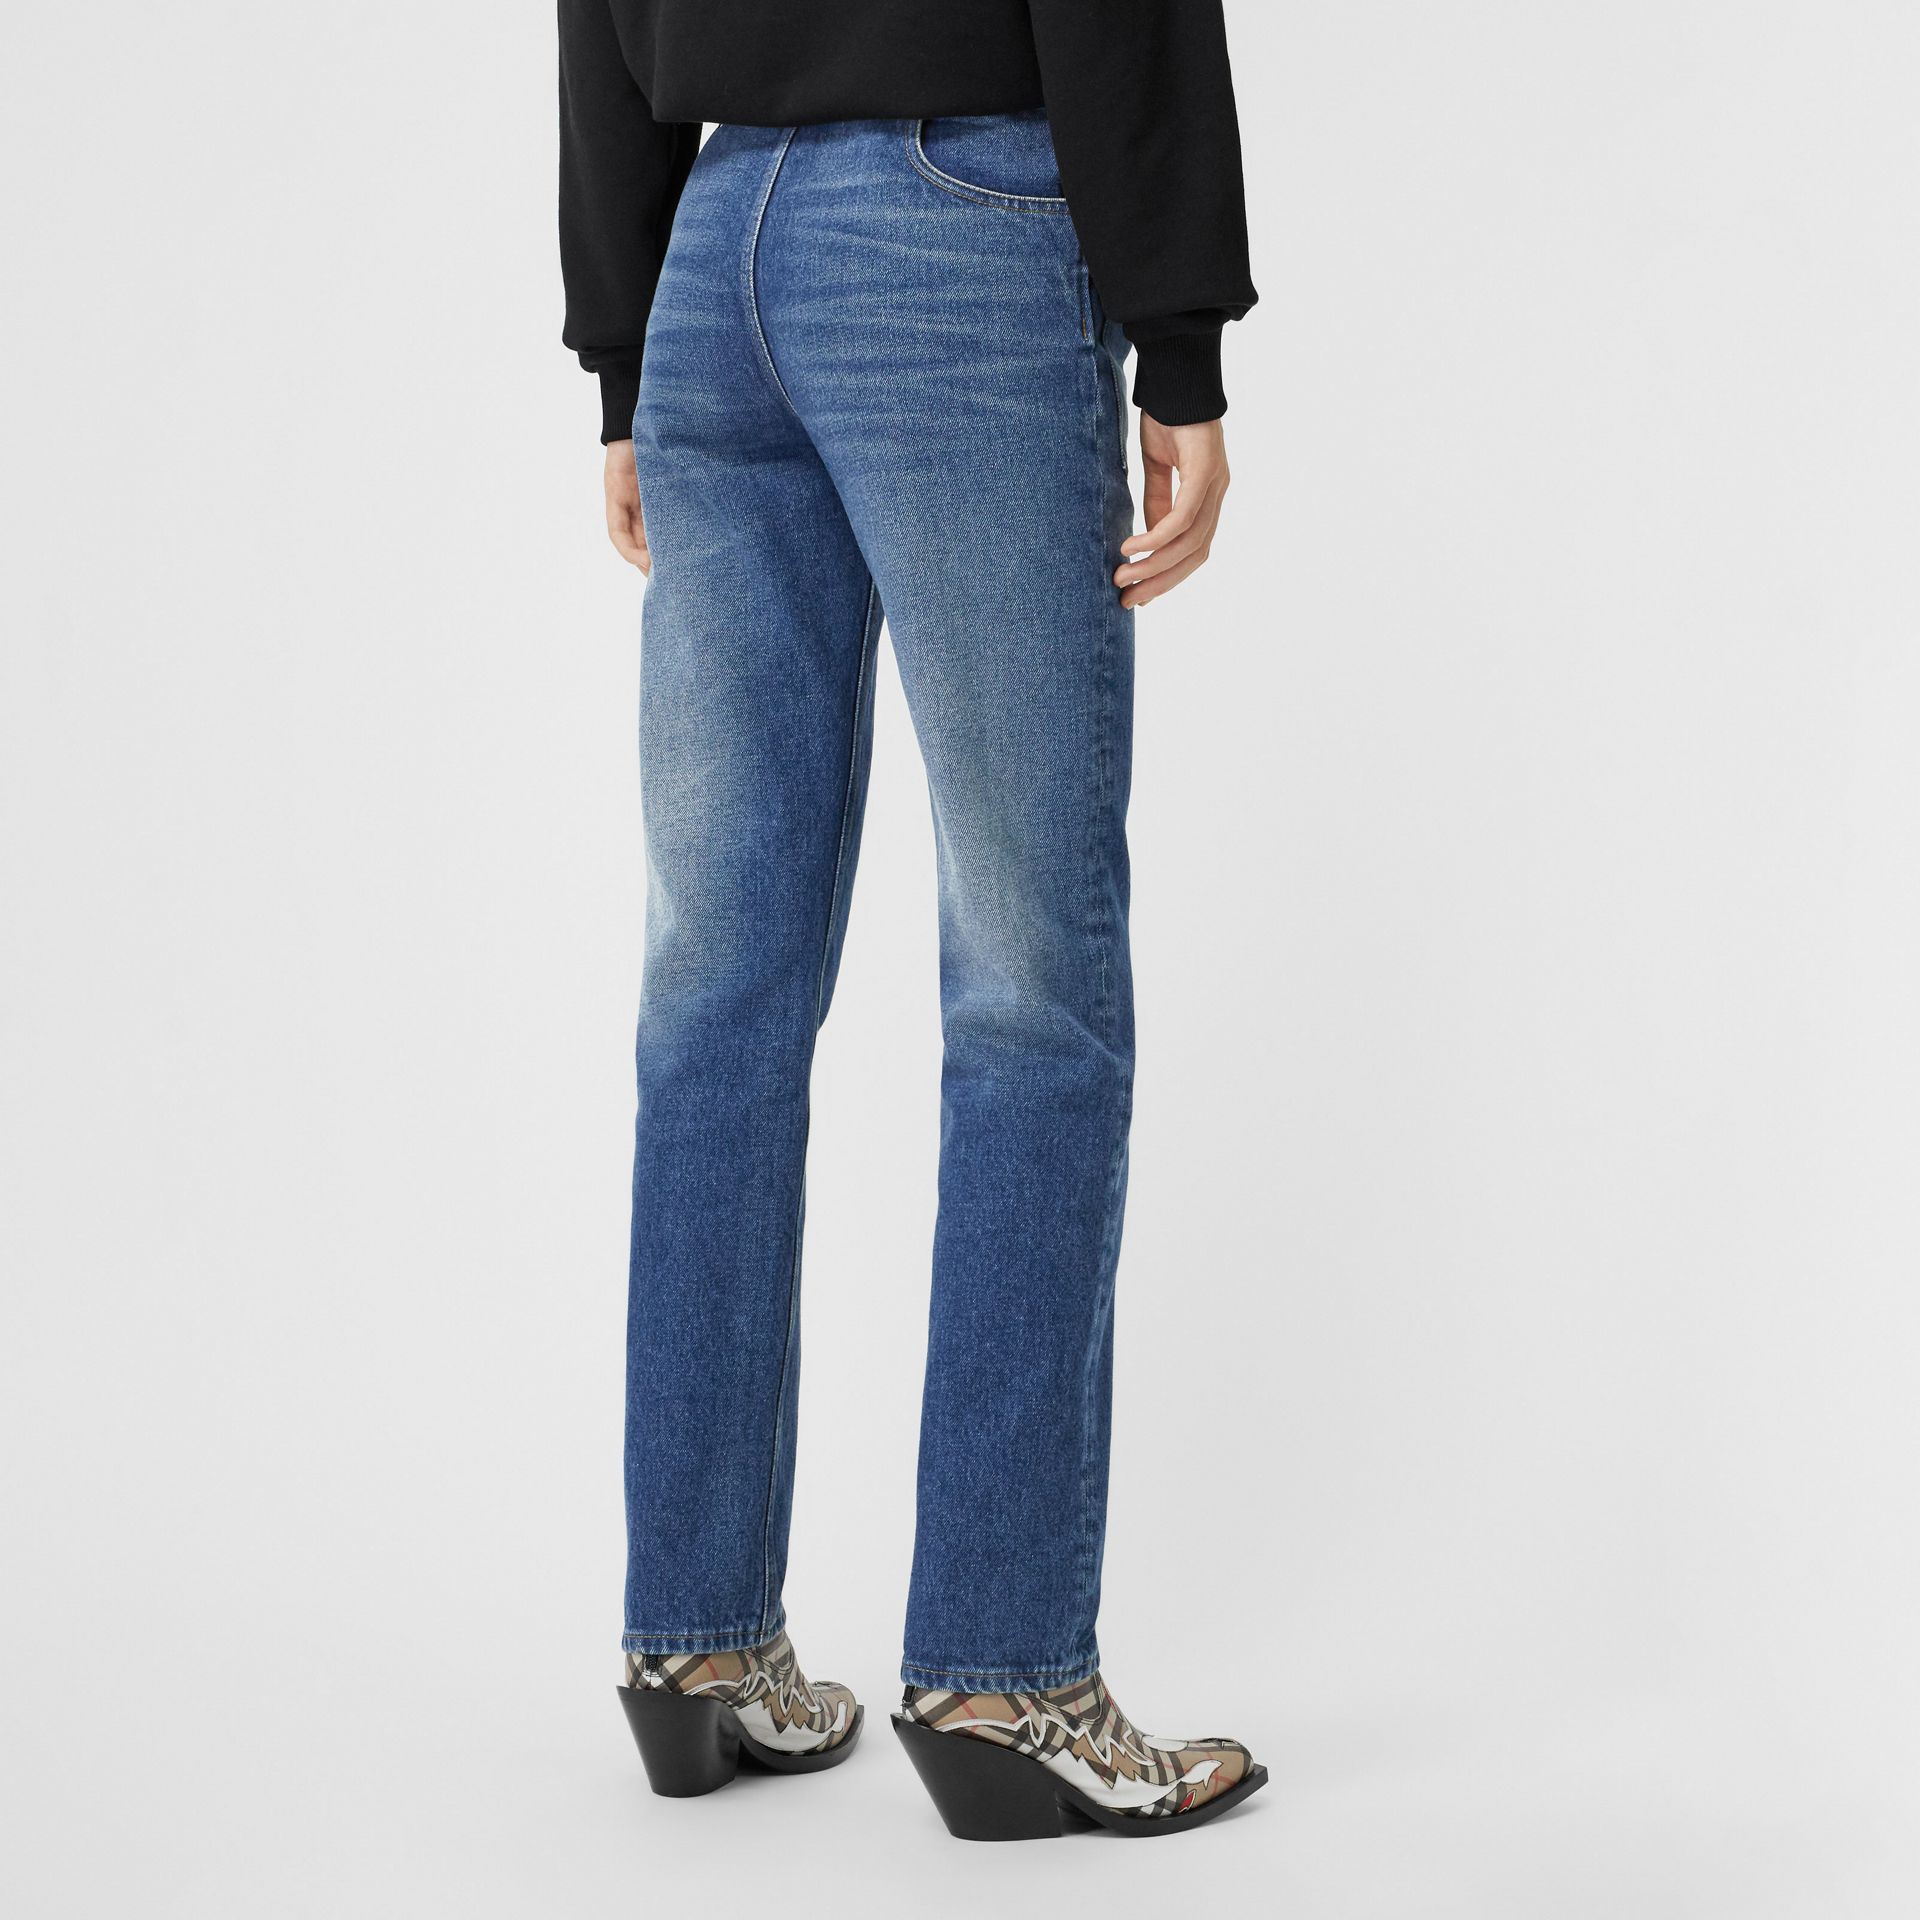 Straight Fit Logo Detail Reconstructed Jeans in Indigo - Women | Burberry United Kingdom - gallery image 2